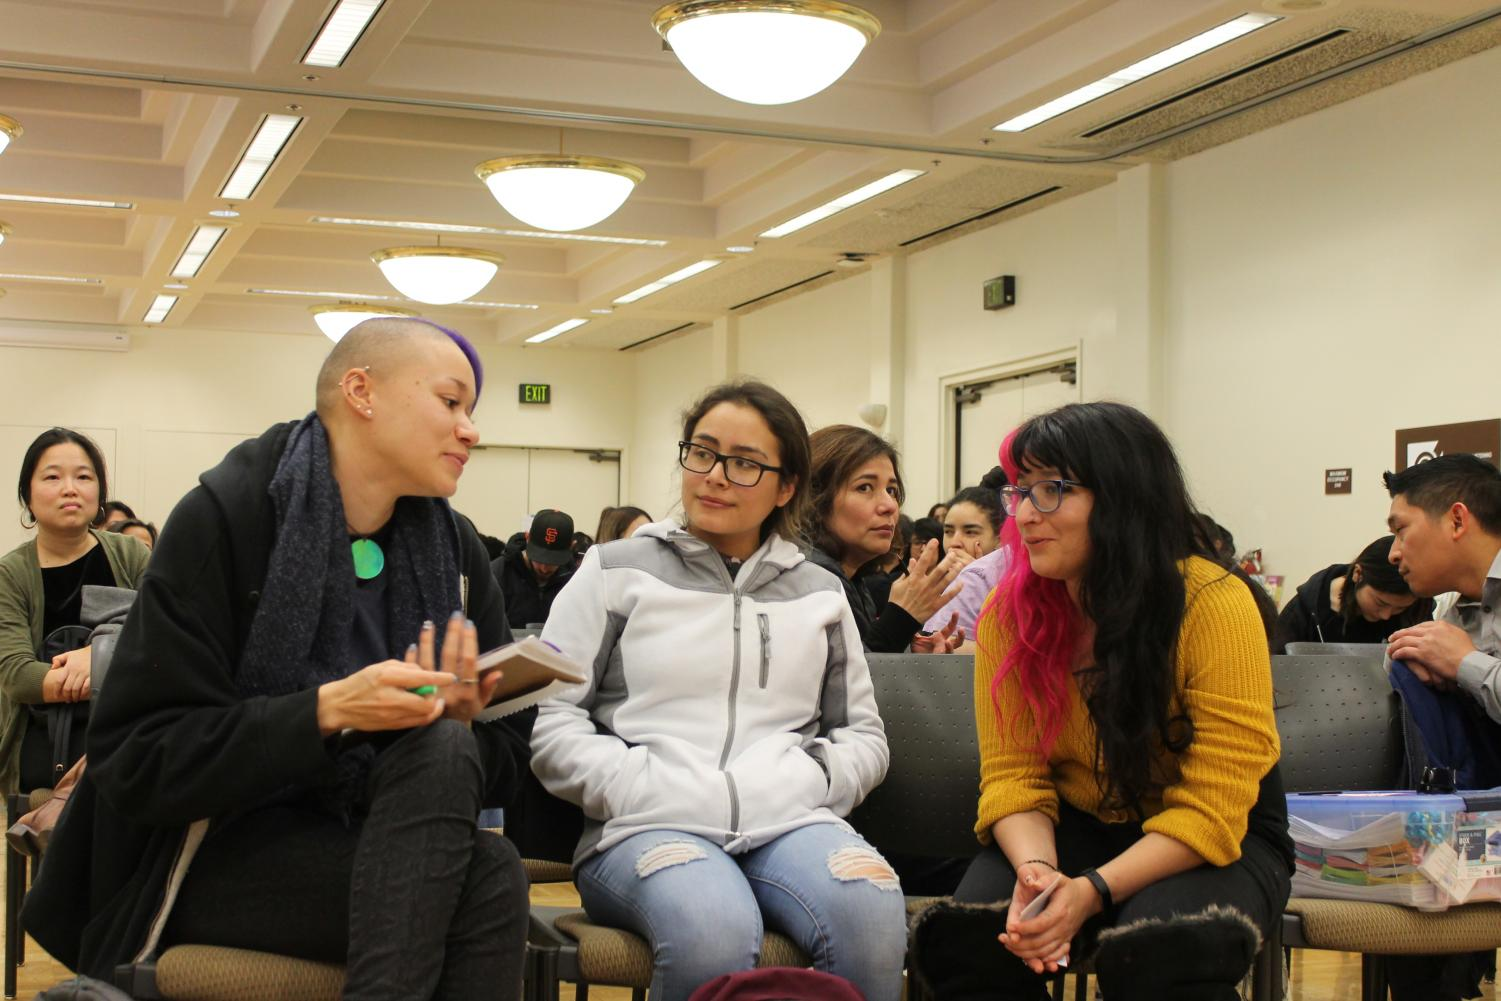 [Left to Right]  Students Gabrielle Paiso, 21, psychology major, Paulina Ochaa, 21,  ethnic studies major and Brenda Carillo, 23, psychology major,  discussing on the film that was screened.